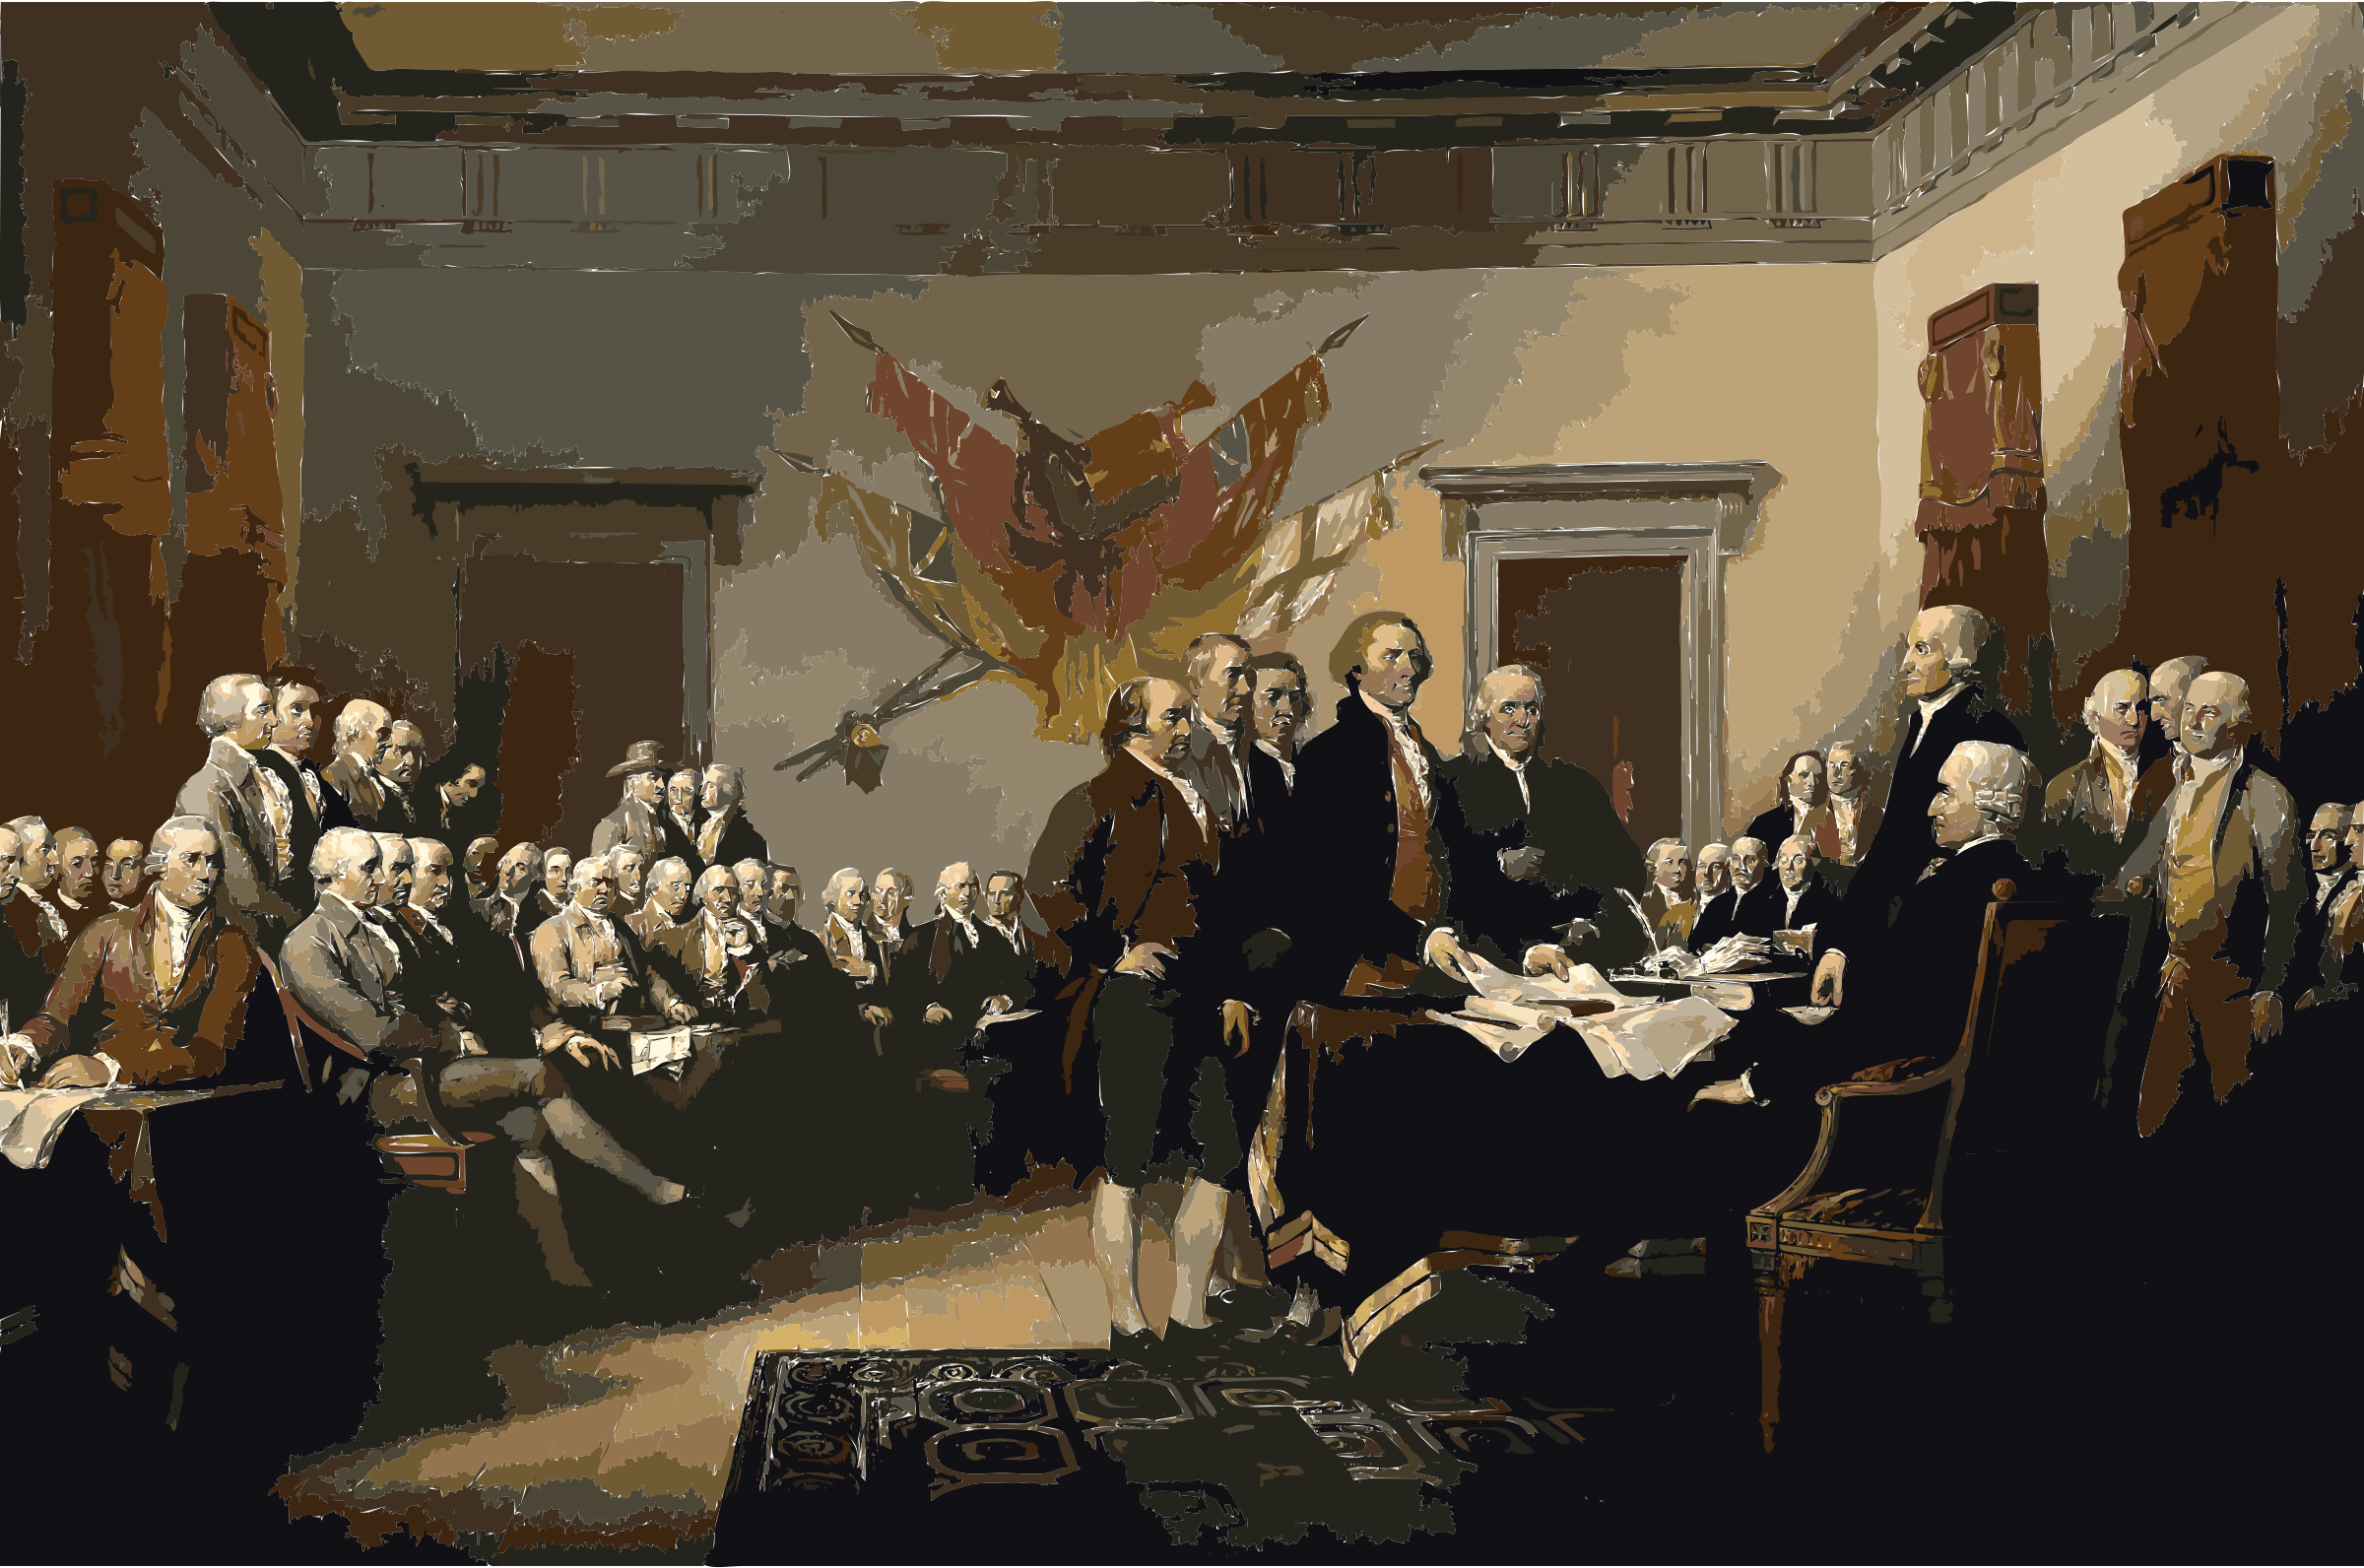 Declaration independence by 3wdob5+5vzcyh4n9vvo8